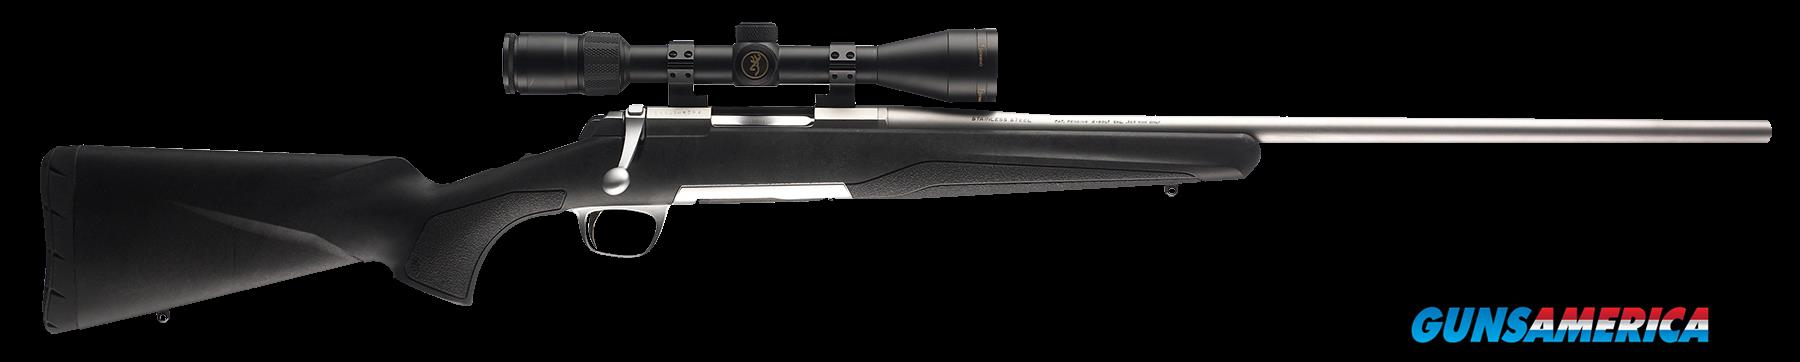 "Browning 035202225 X-Bolt Stainless Stalker 280 Rem 22"" 4+1 Comp w/Dura-Touch  Guns > Rifles > Browning Rifles > Bolt Action > Hunting > Stainless"